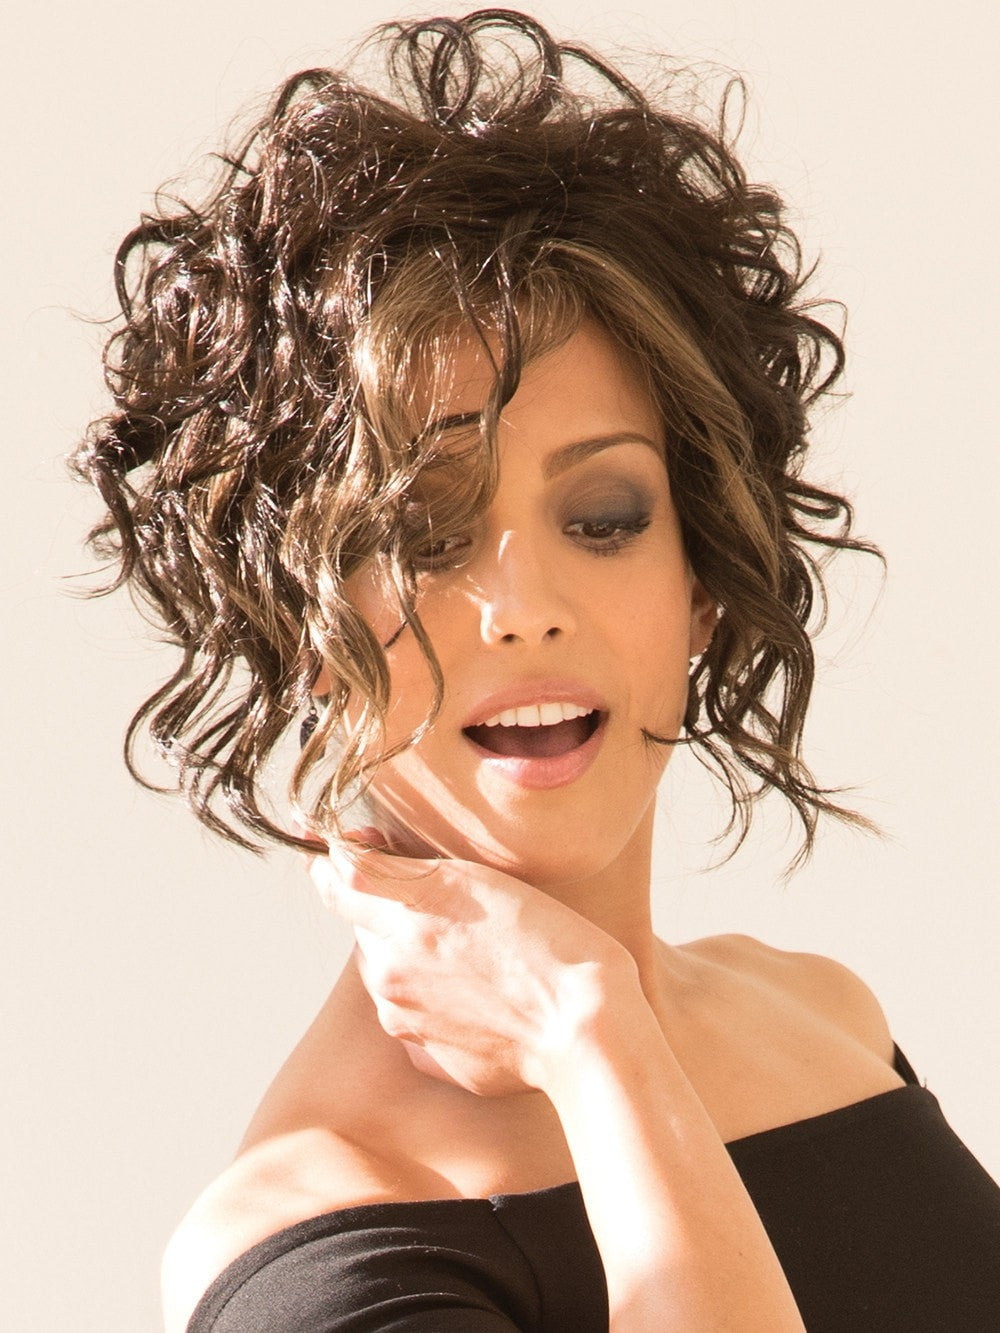 Sonoma wig by rene of paris wavy bob wigs the wig experts sonoma by rene of paris in mocha brown nvjuhfo Gallery